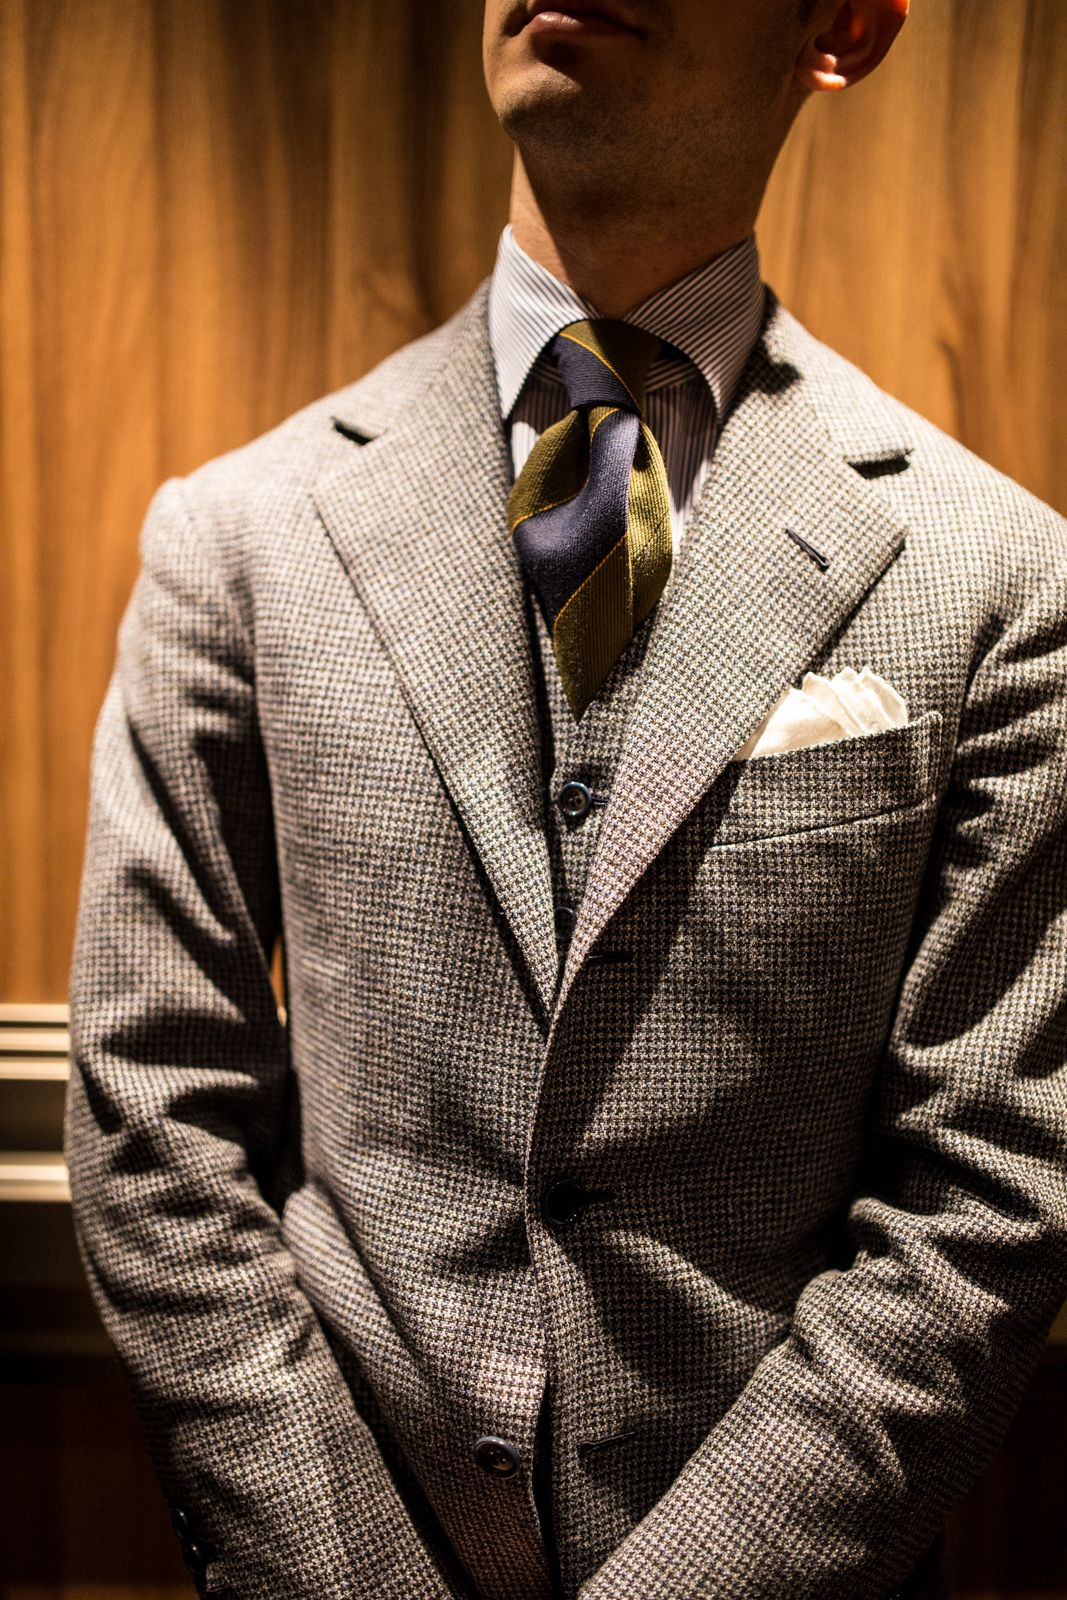 Flannel shirt with suit  Houndstooth Flannel  Match u Comnination Men  Pinterest